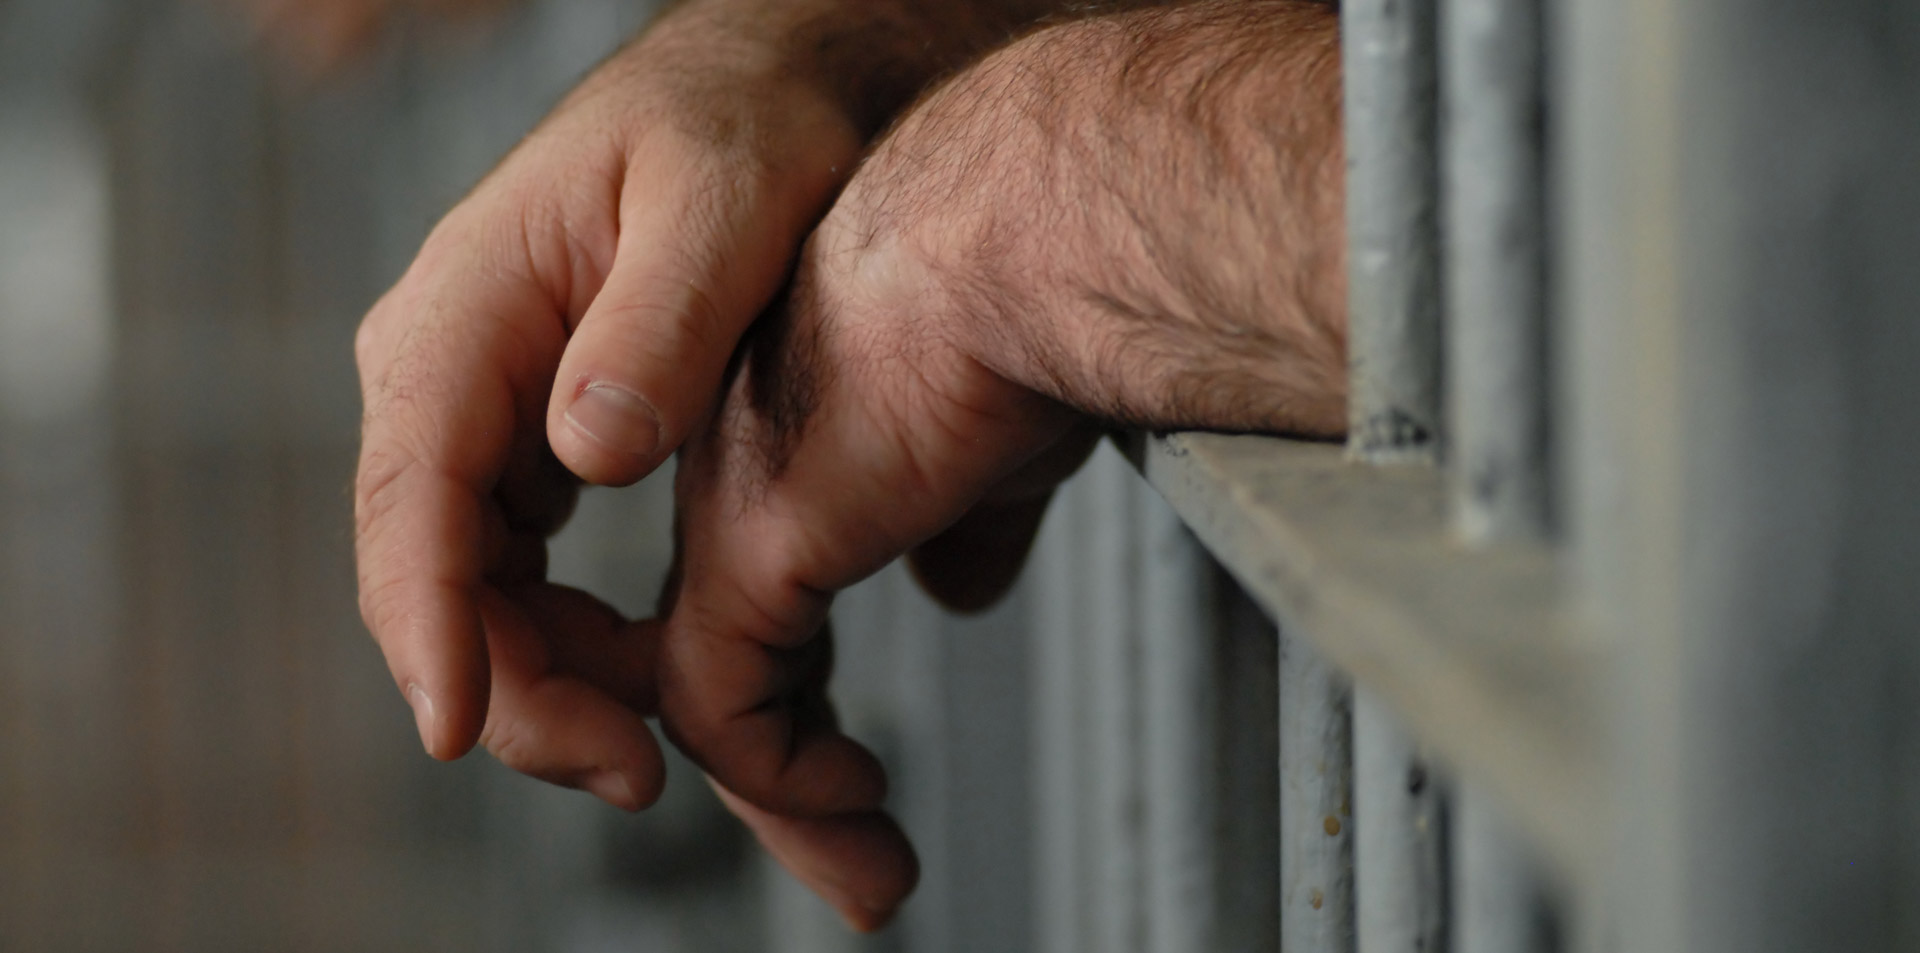 Two hands poking between the bars of a jail cell